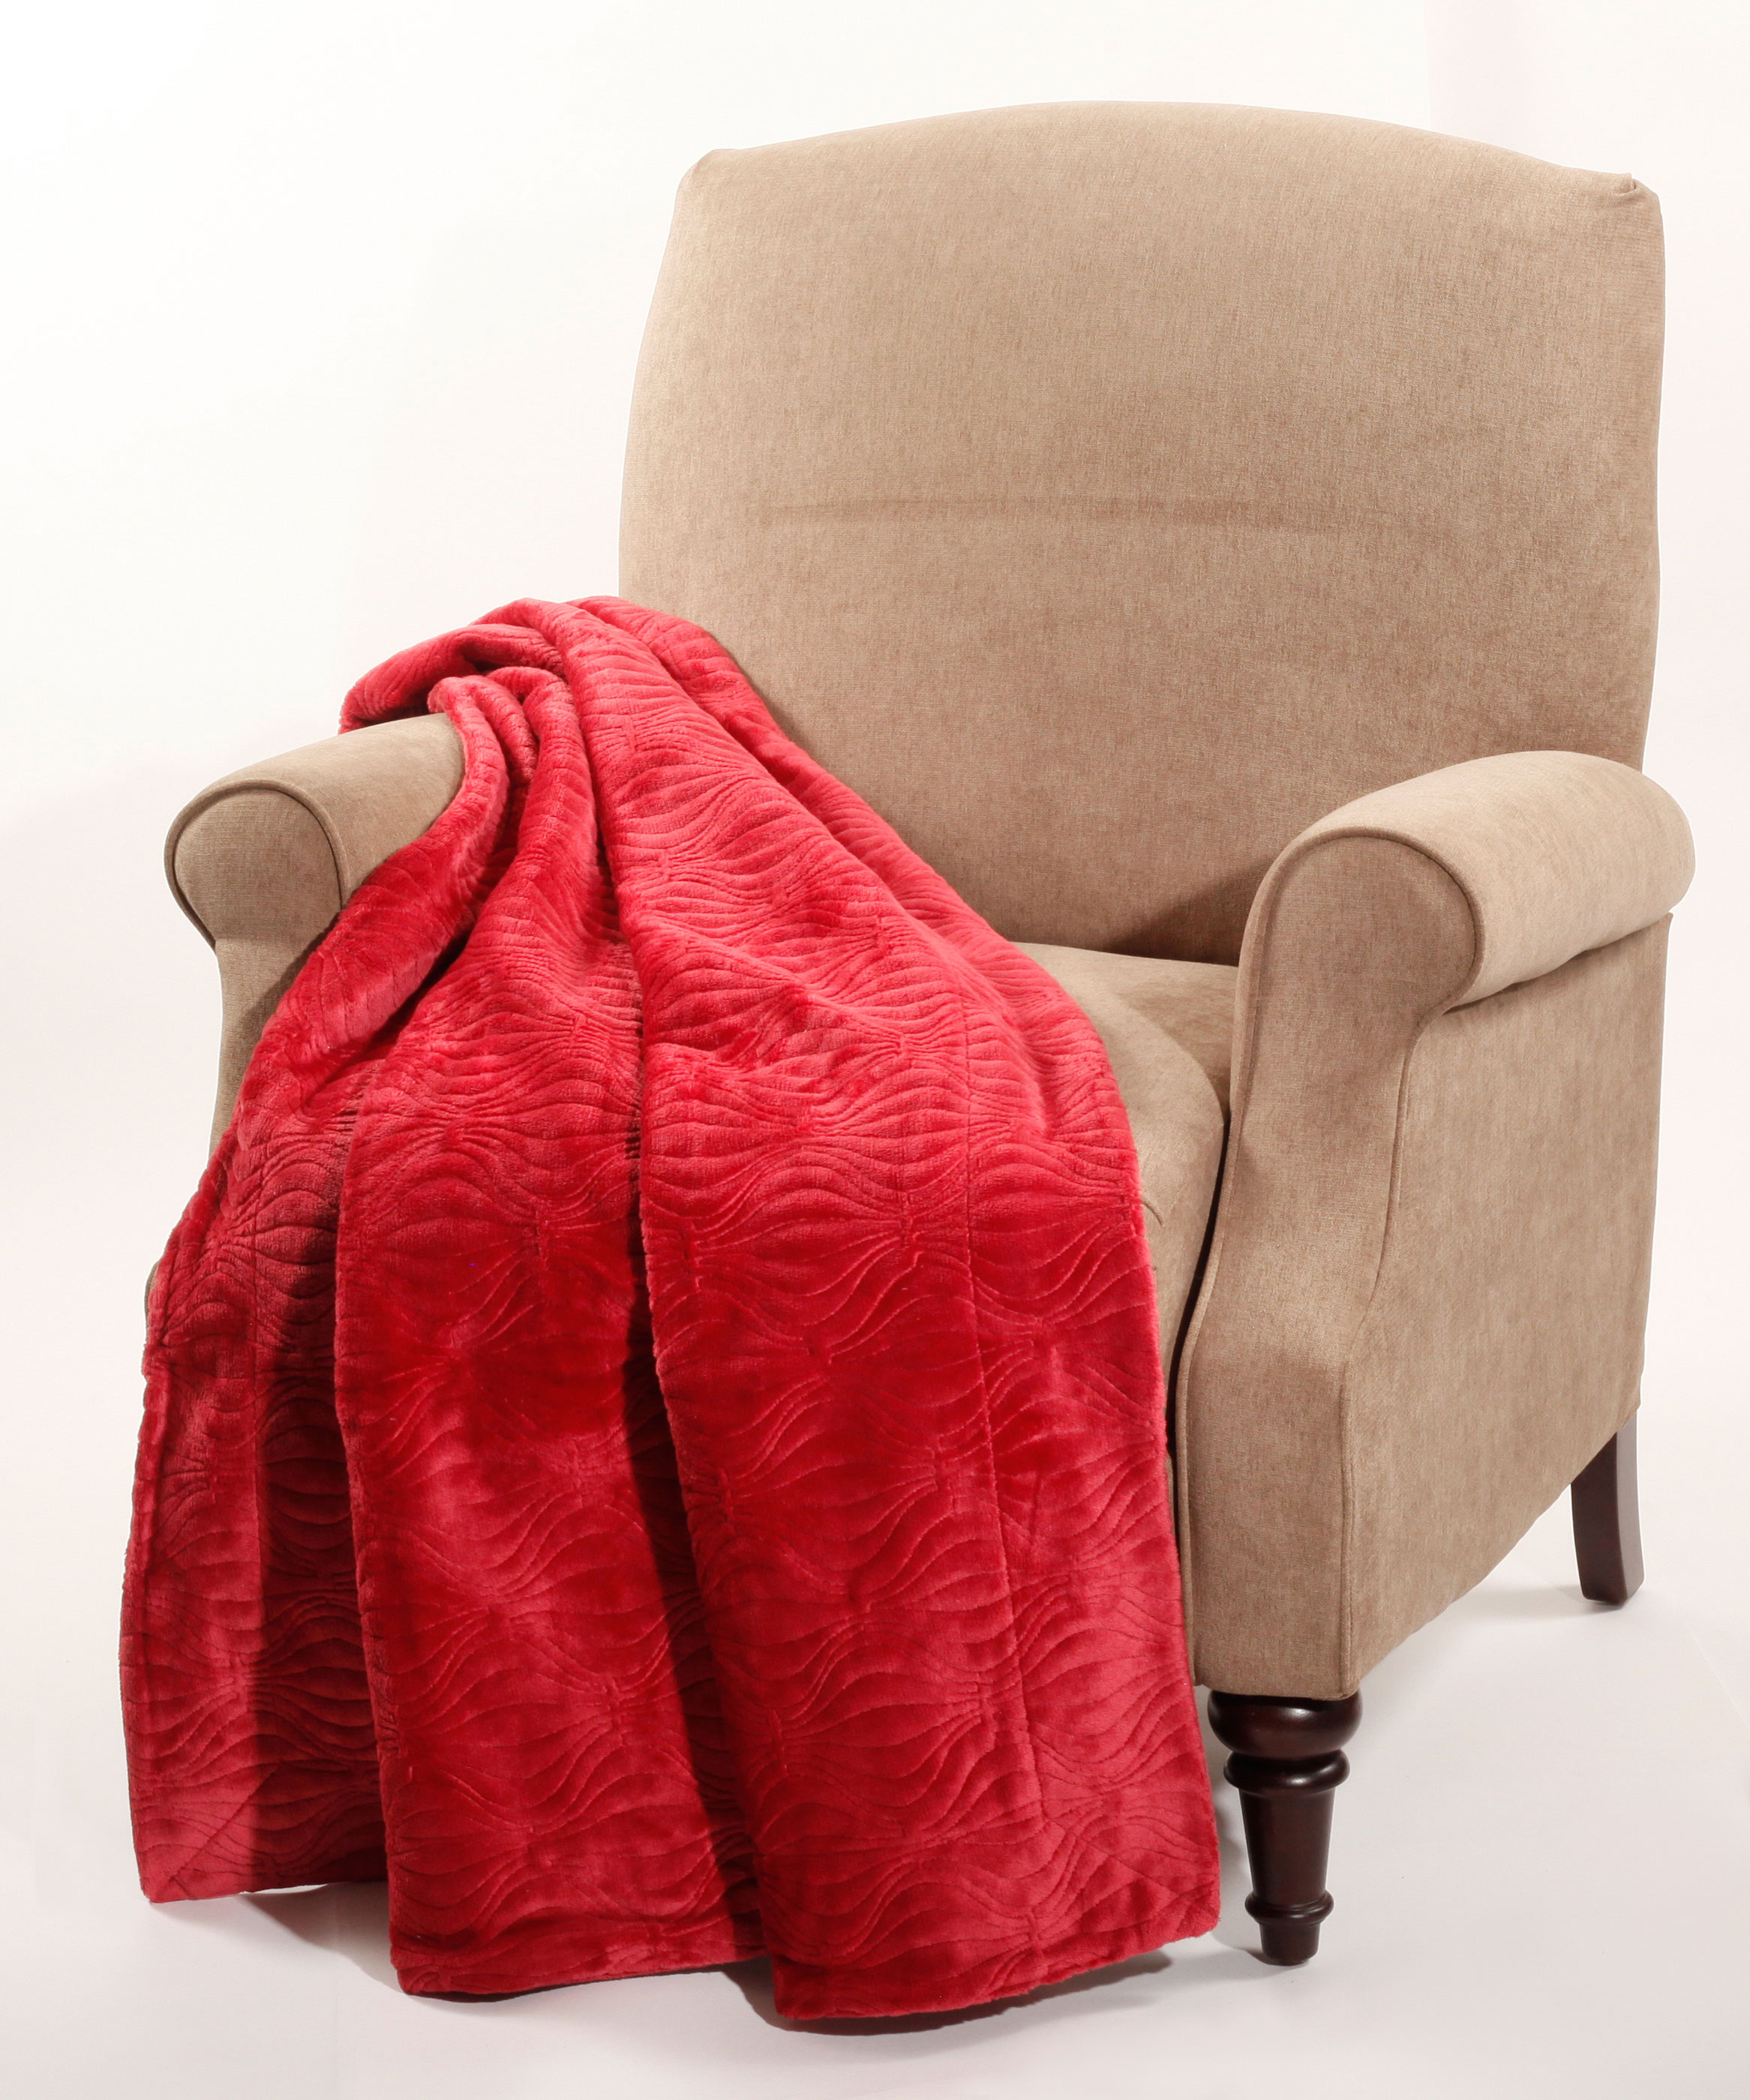 100 polyester sofa throws how to reupholster a rolled arm quilted flannel fleece bnf home inc